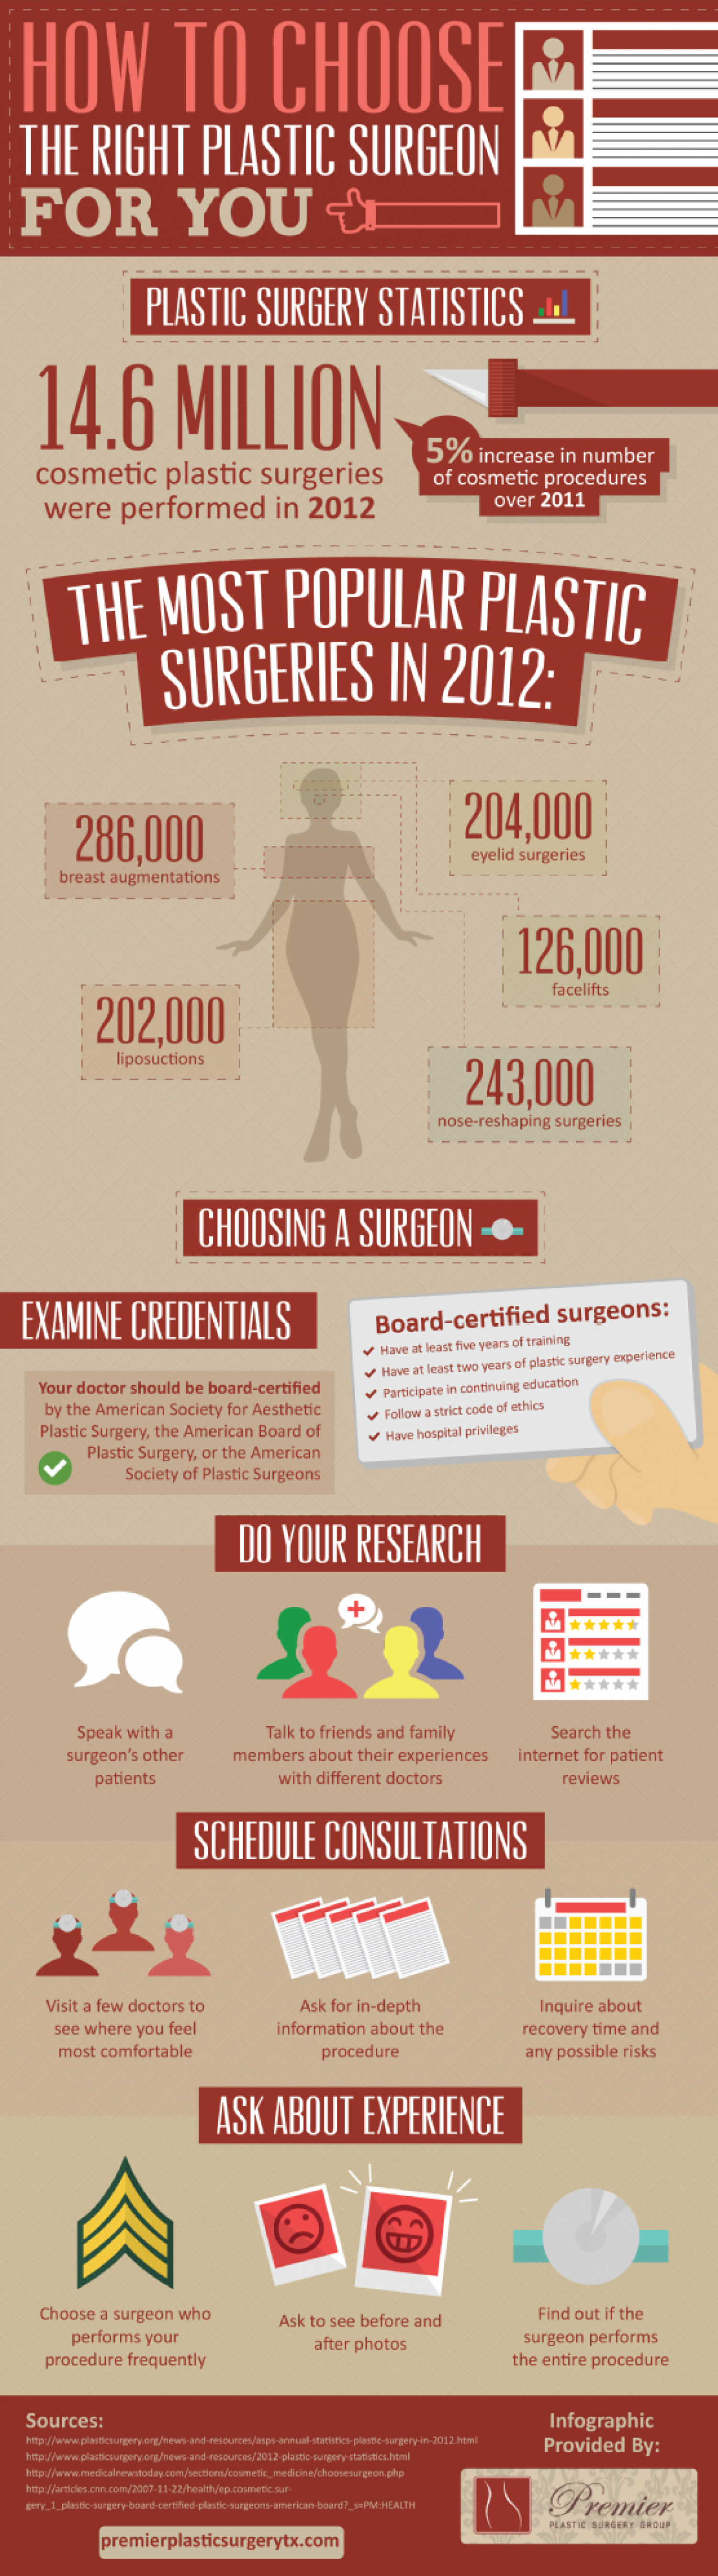 How to Choose the Right Plastic Surgeon for You Infographic